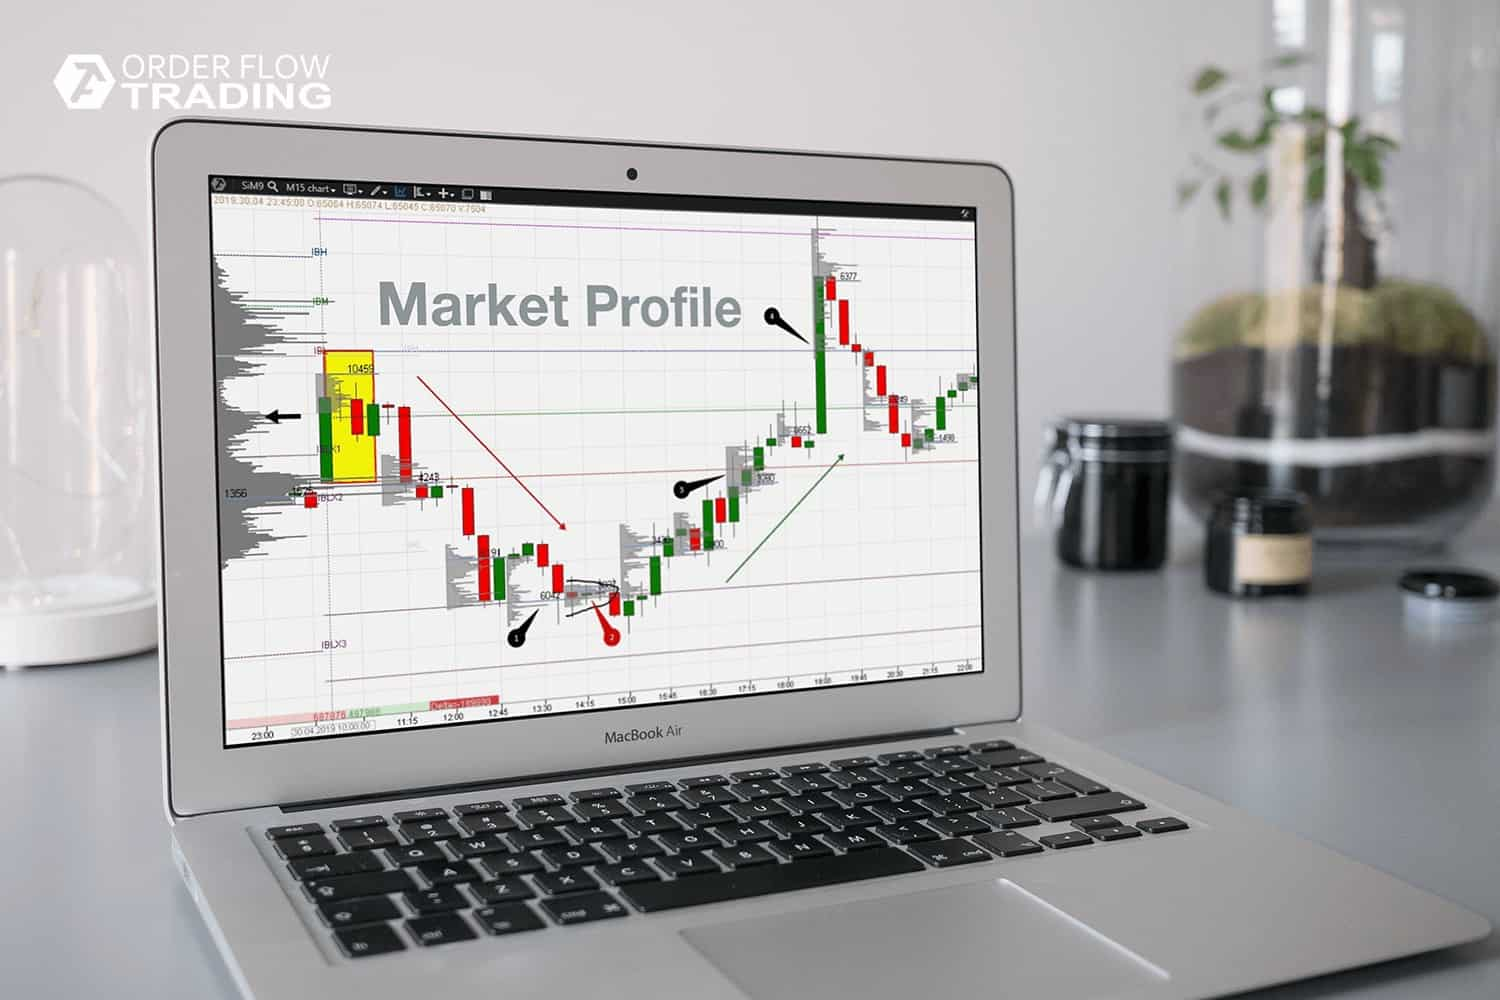 How to improve trading using the Market Profile